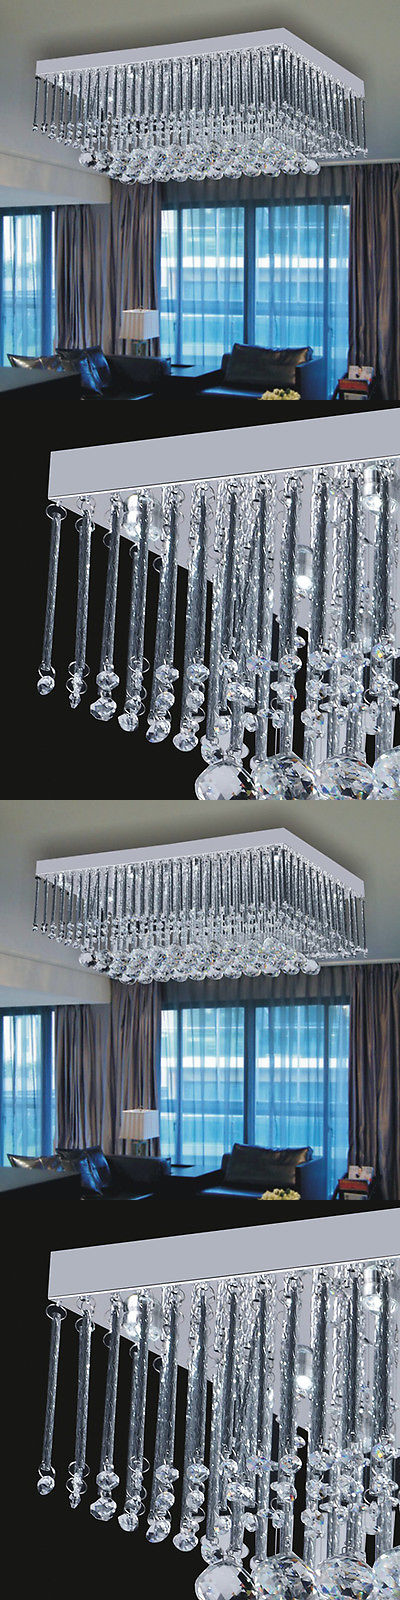 Chandeliers and Ceiling Fixtures 117503: Modern Luxury Crystal Led Lighting Ceiling Light Pendant Drop Lamp Chandeliers -> BUY IT NOW ONLY: $97.84 on eBay!